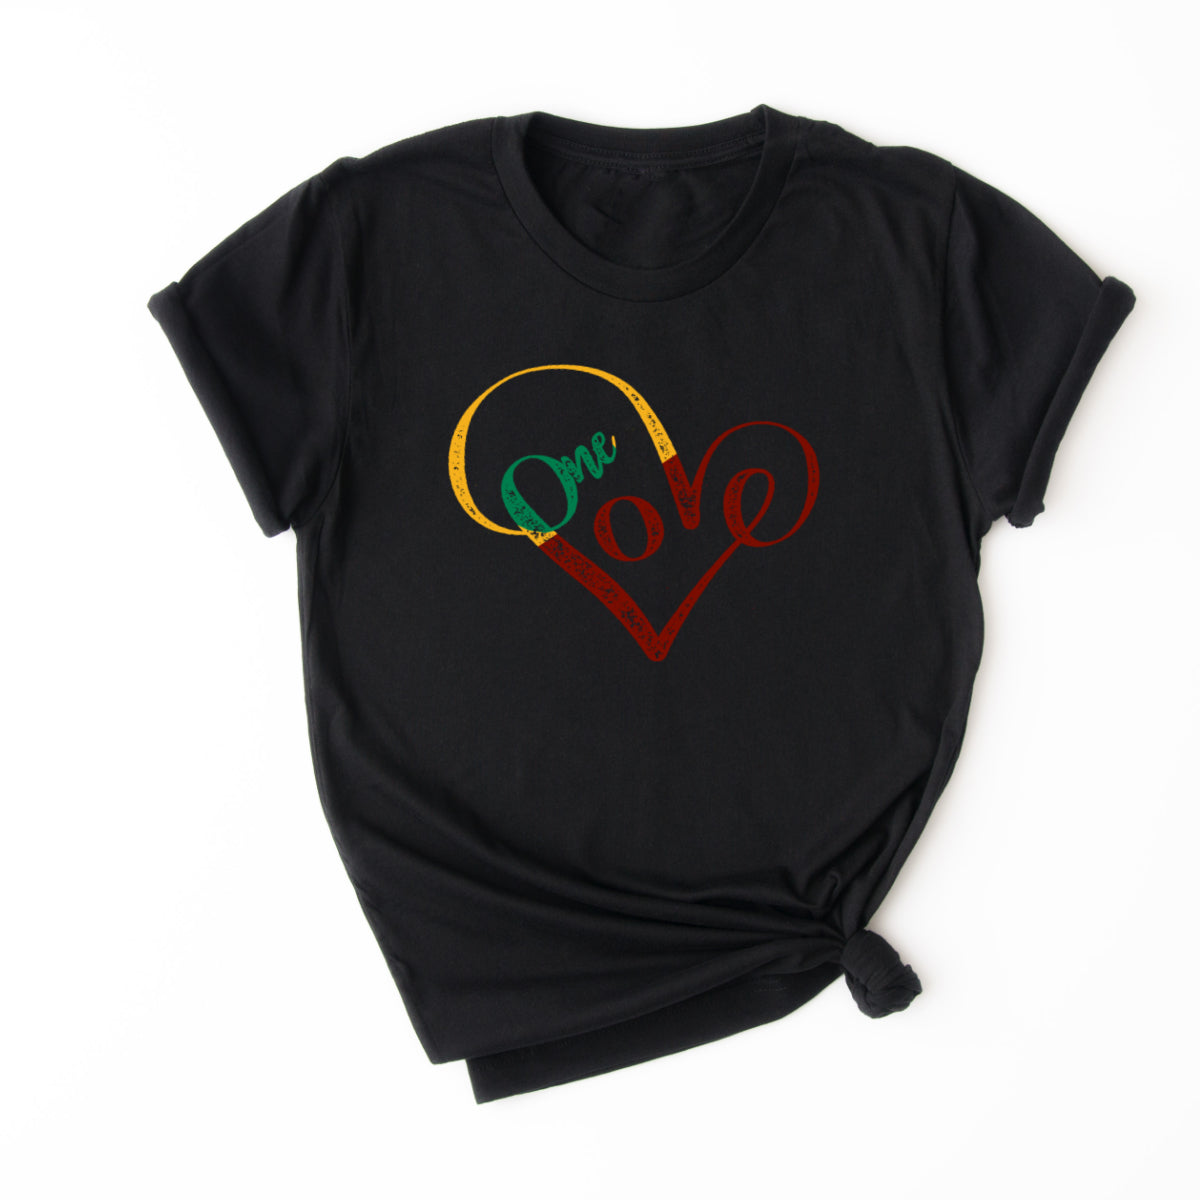 One Love - Relaxed  Fit Tee